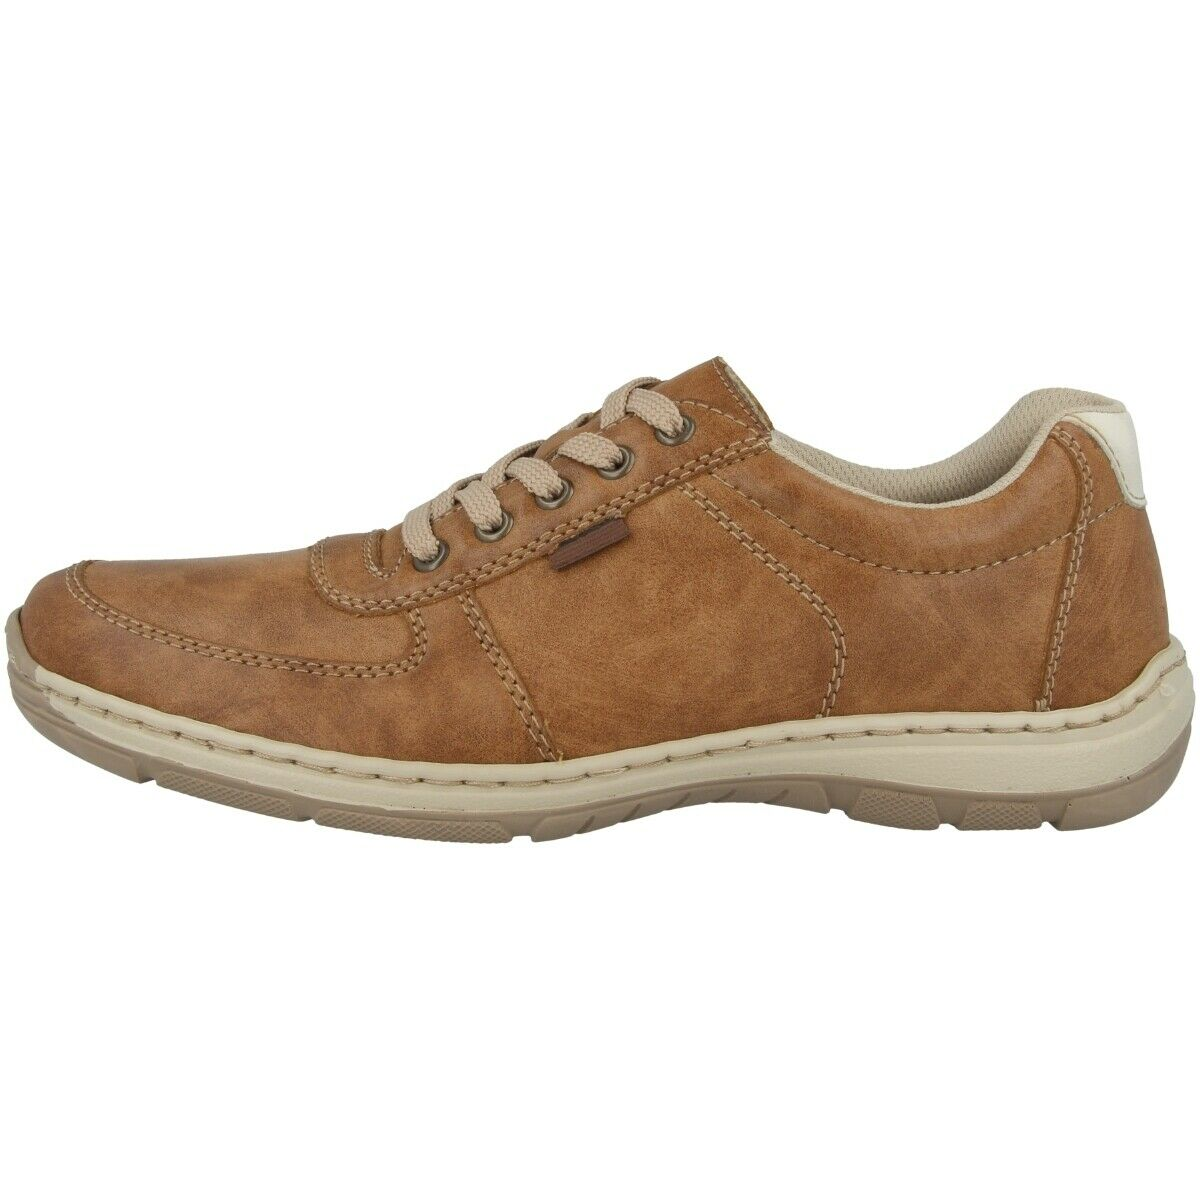 Rieker Elmira-Preston Men shoes Men's Low shoes Trainers Peanut Chalk 15224-24